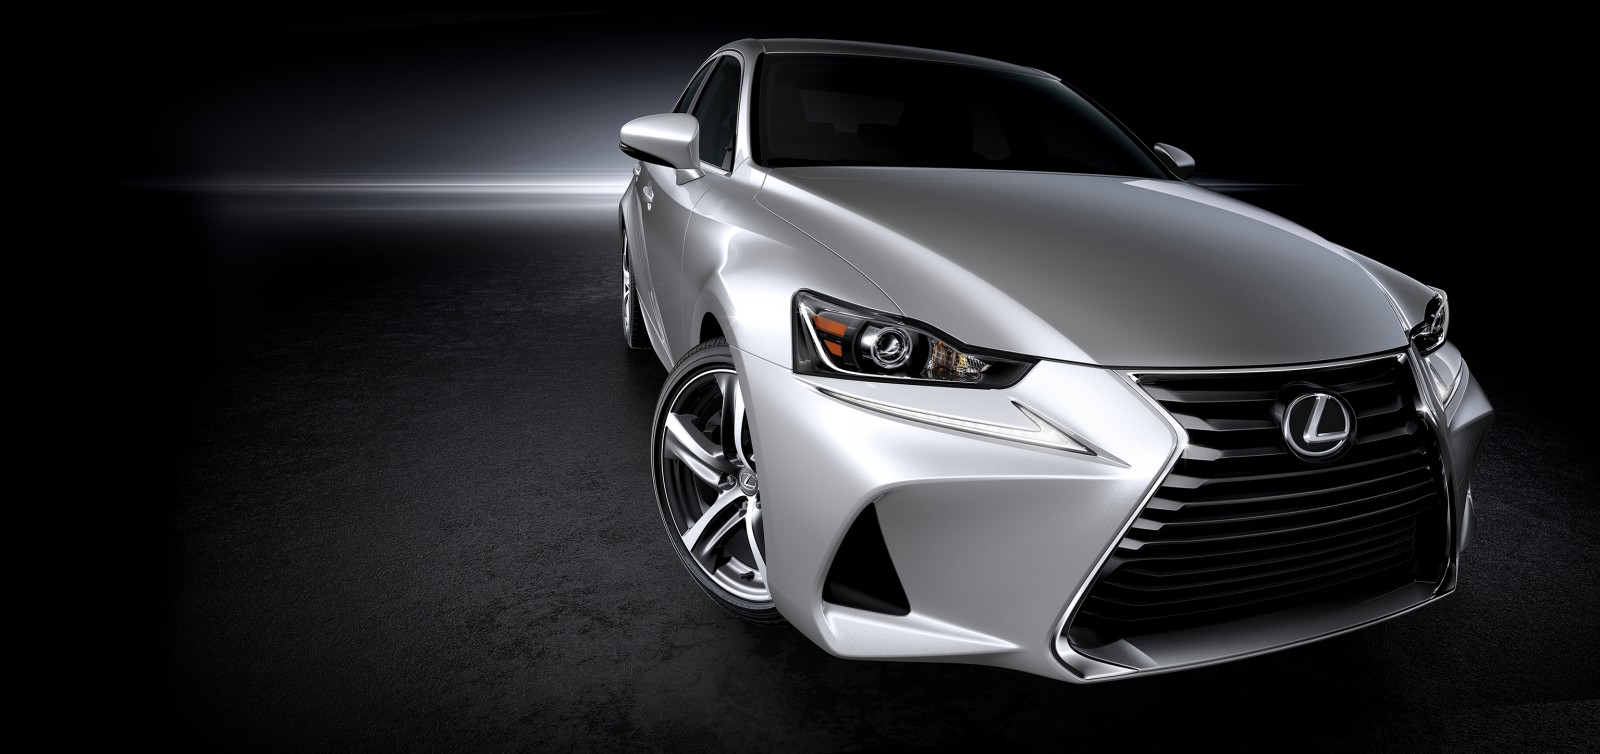 2017 Lexus IS spindle grille